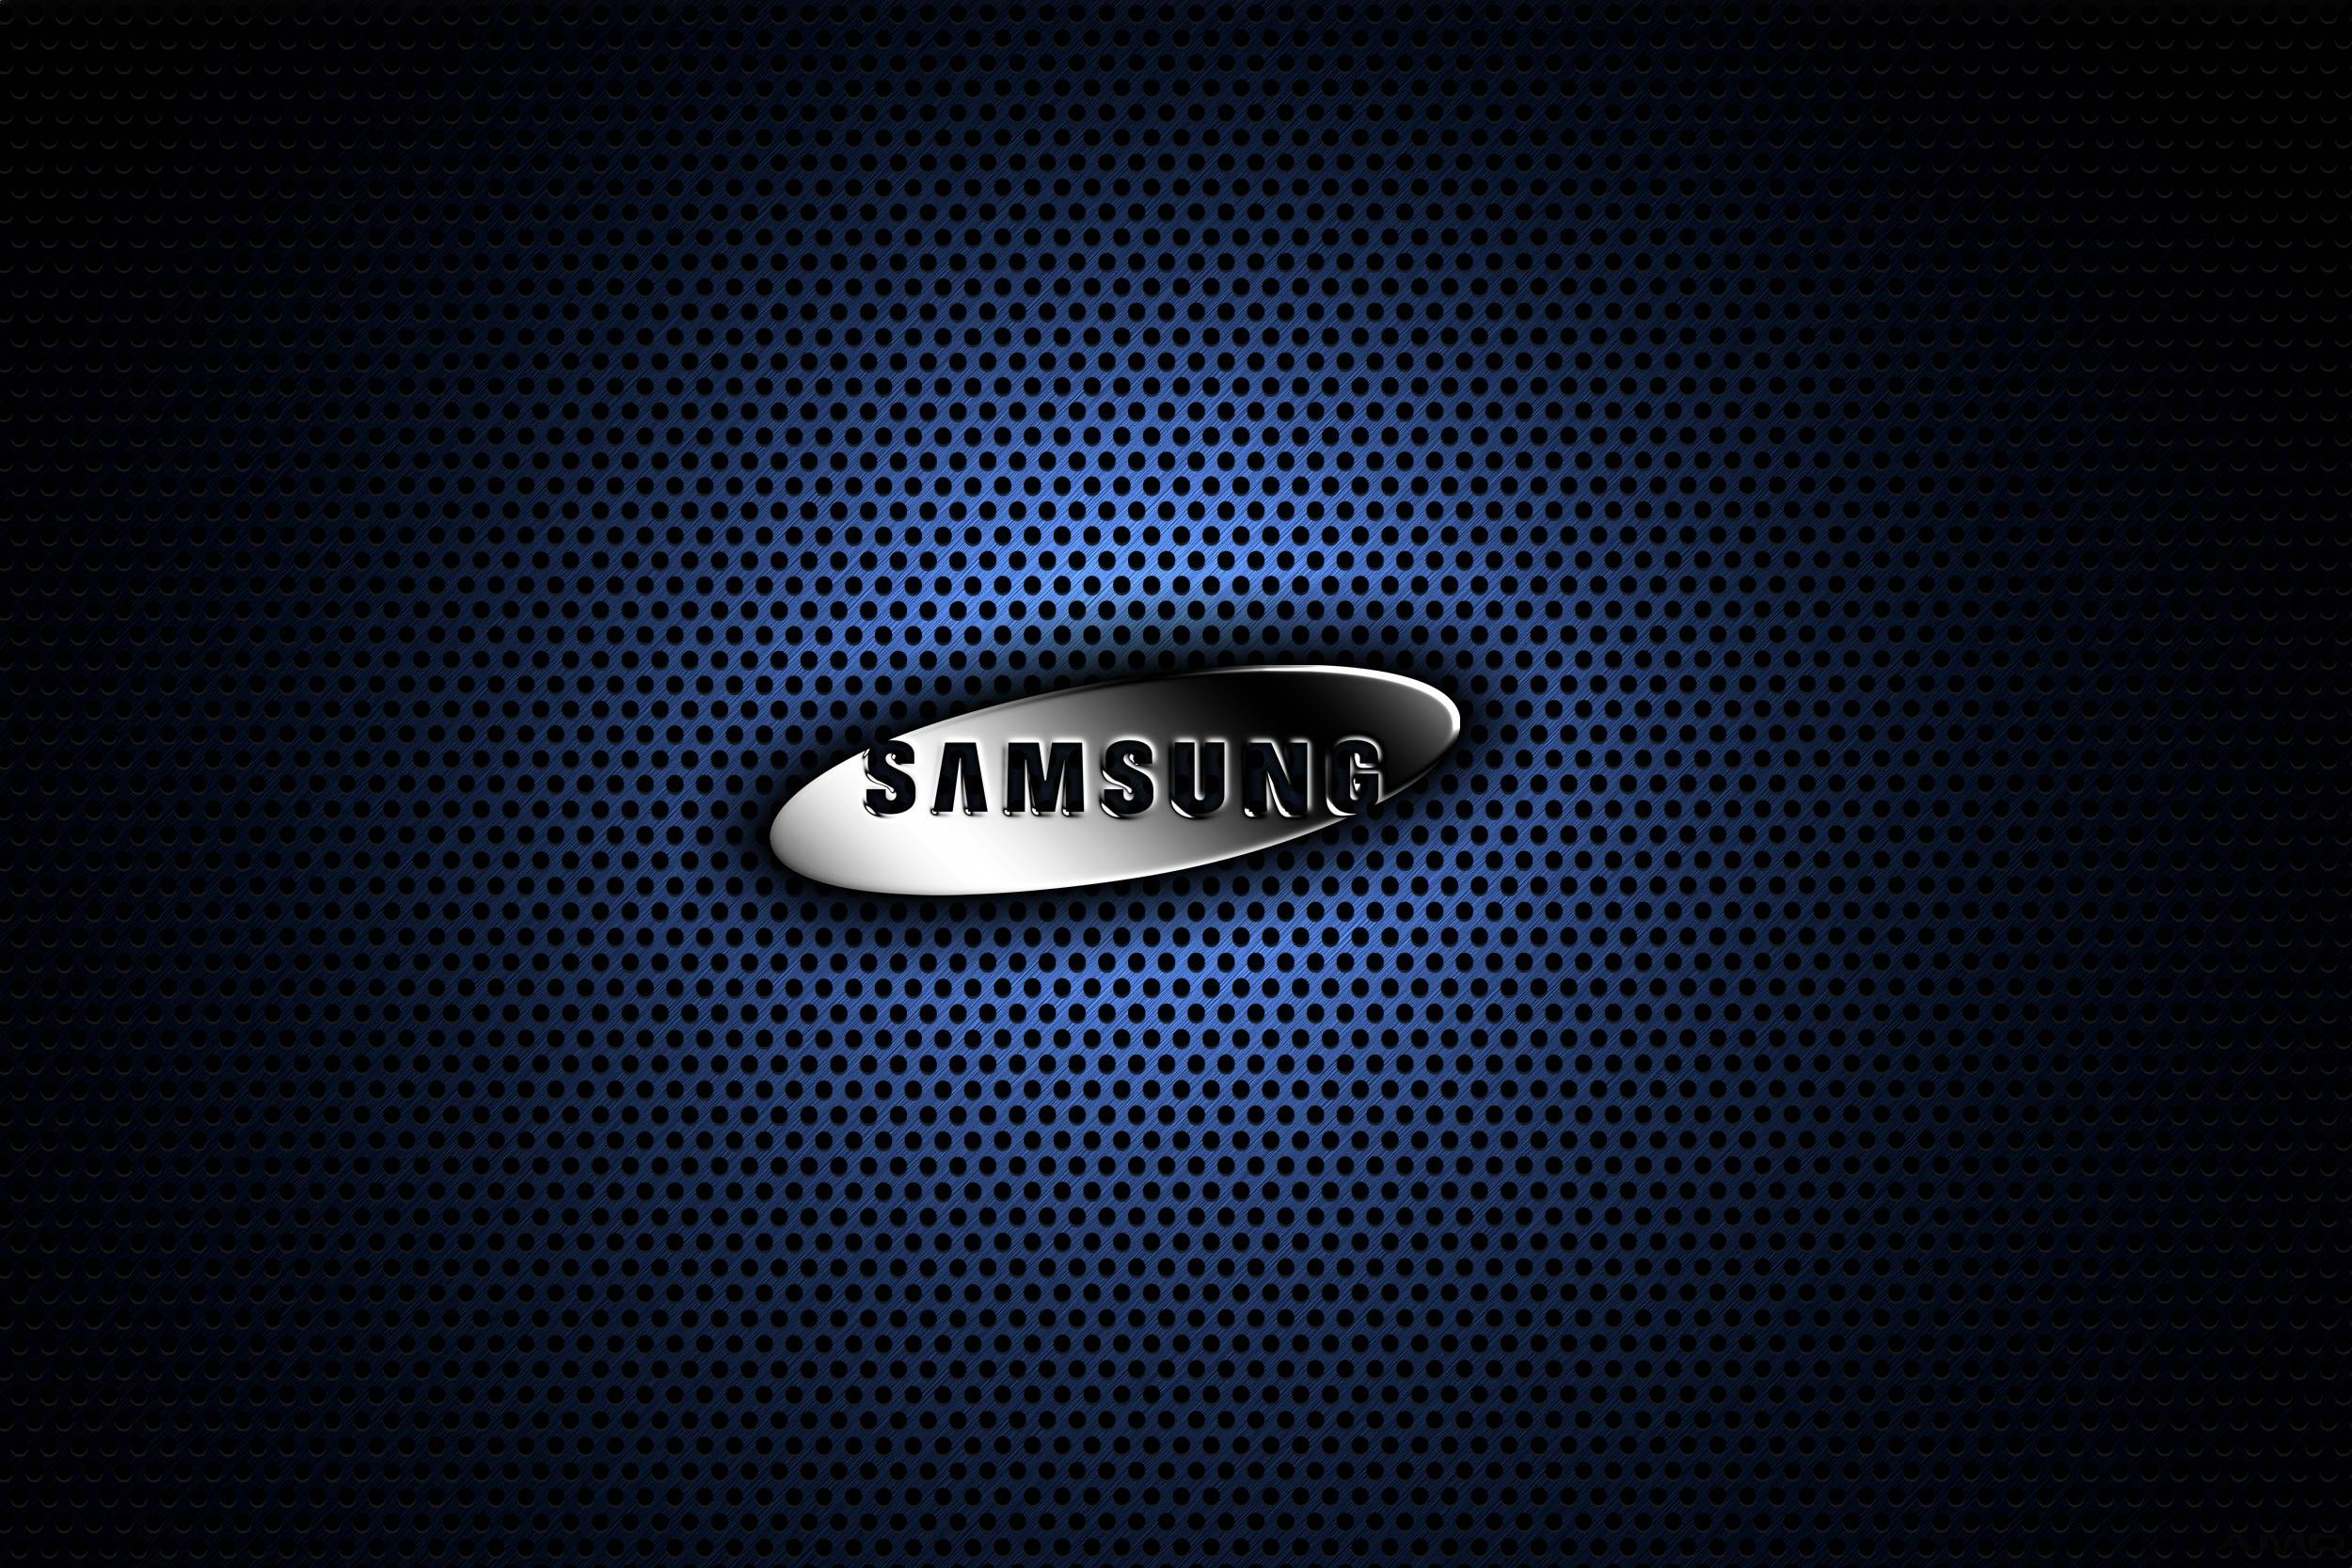 Samsung Logo Wallpapers 2500x1667